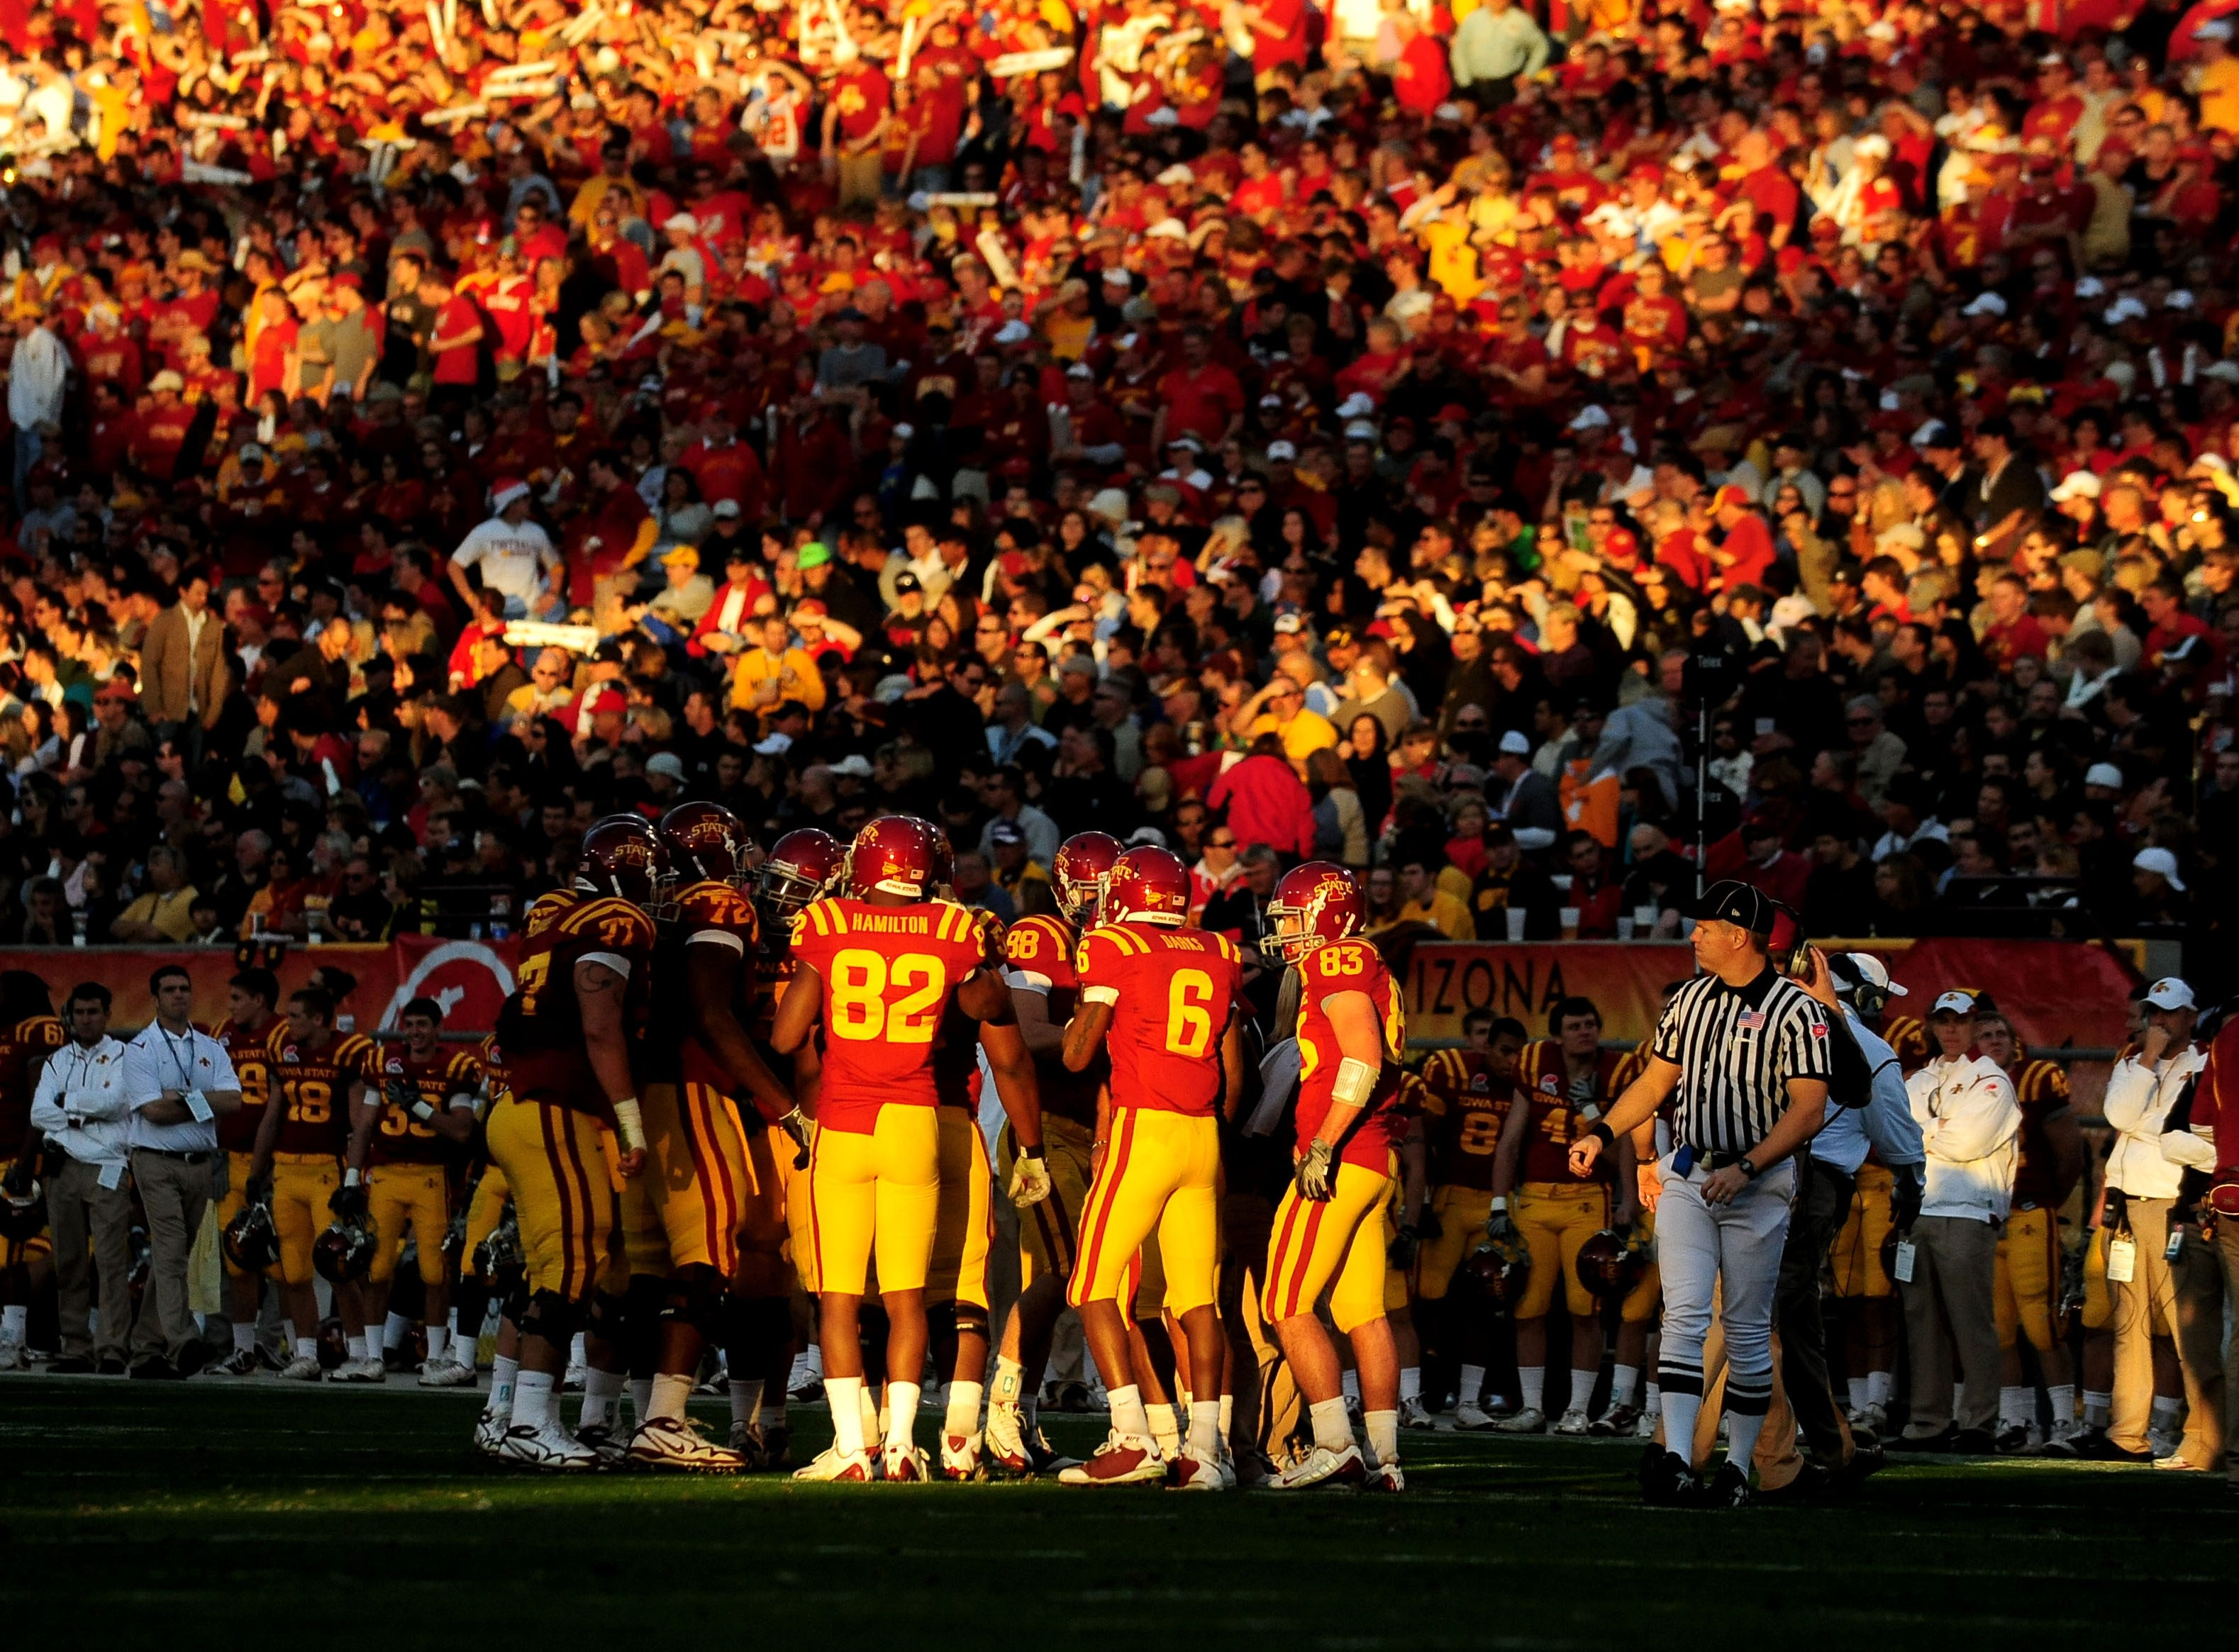 Dec. 31 2009; Tempe, AZ, USA; Iowa State Cyclones players huddle during the second quarter against the Minnesota Golden Gophers in the 2009 Insight Bowl at Sun Devils Stadium. Mandatory Credit: Jennifer Stewart-USA TODAY Sports